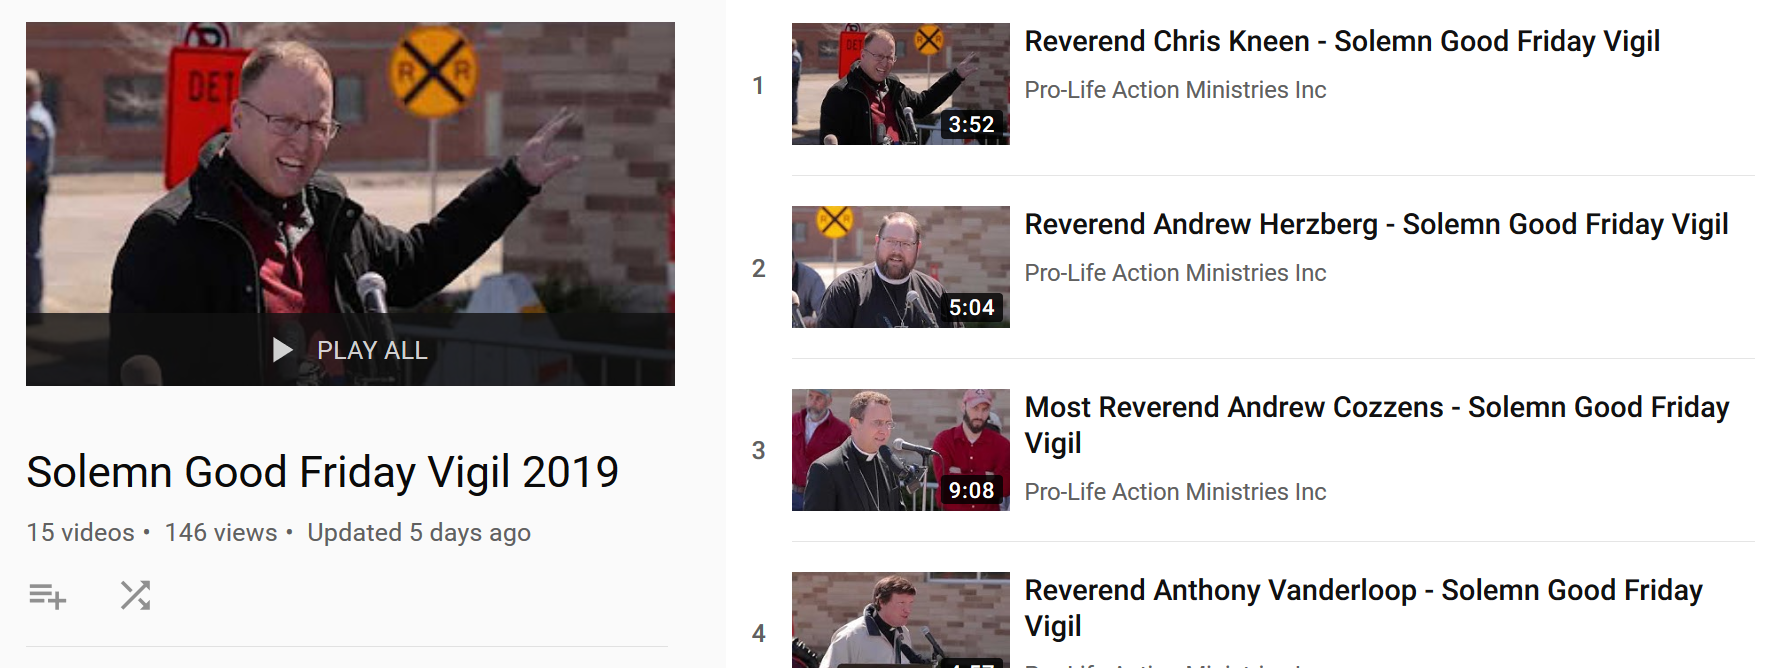 Fourteen area pastors spoke at regular intervals during the 7.5-hour vigil. Click the image above to view their messages on YouTube, including a message by local LCMS Pastor Andrew Herzberg of Trinity Lutheran Church in Farmington, MN.